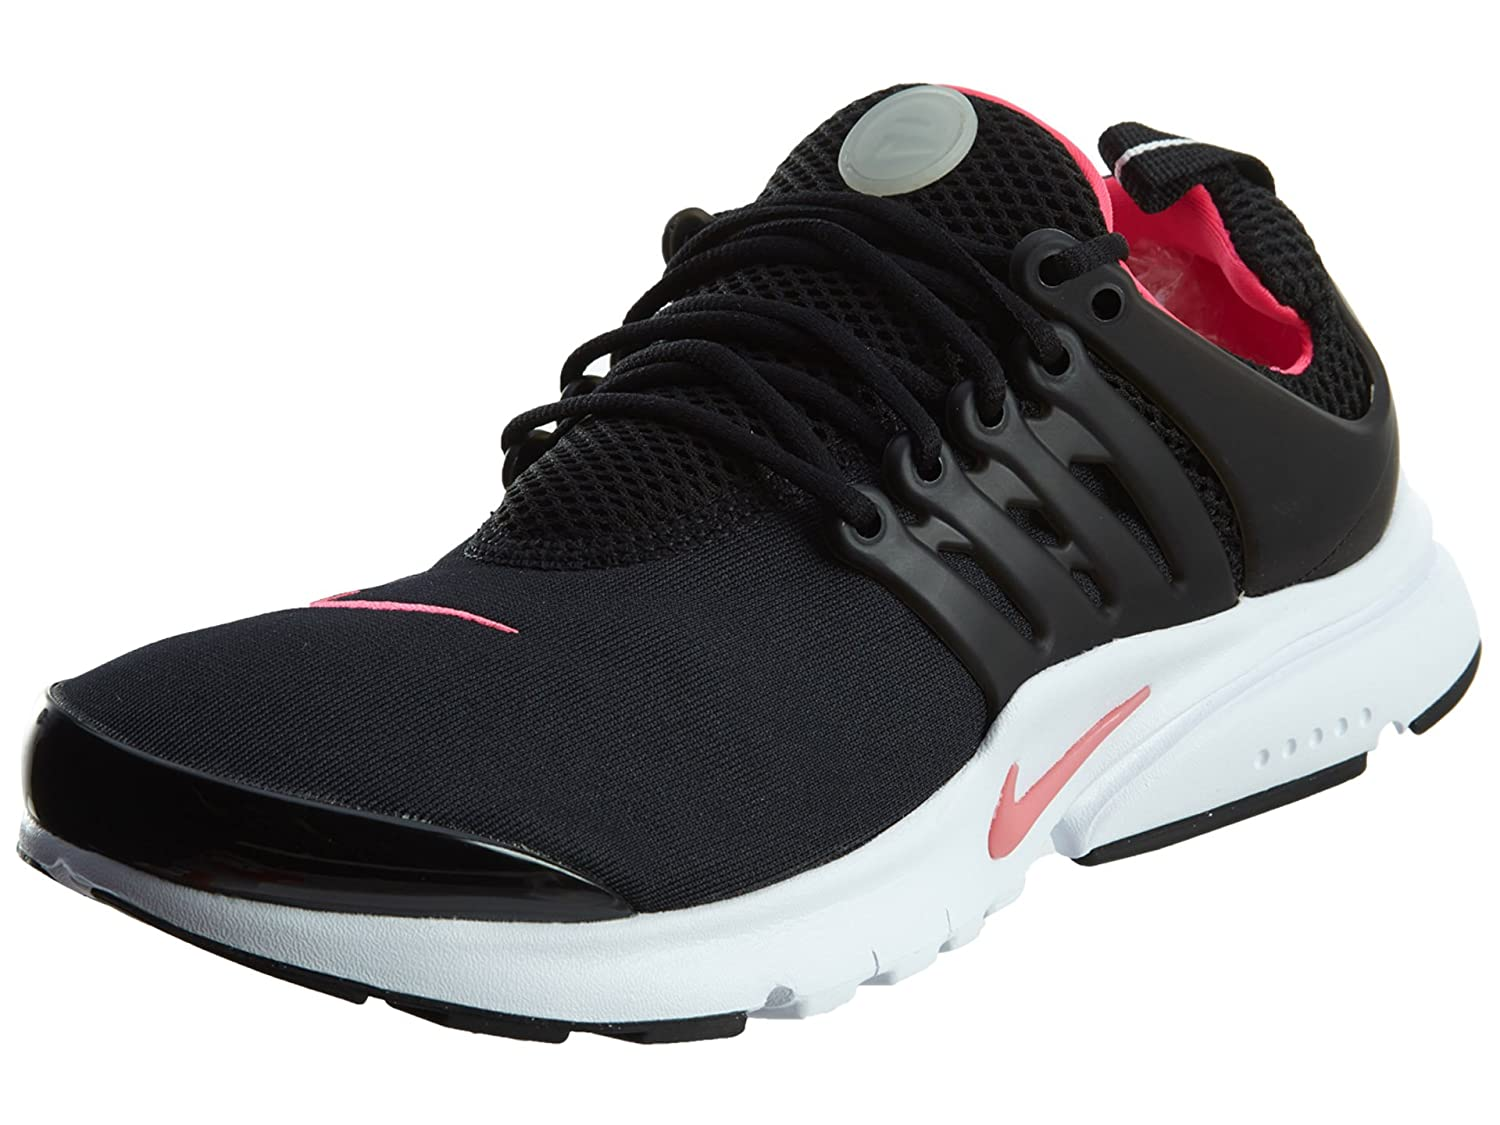 outlet store fc10c e2a22 Amazon.com   NIKE - Presto GS Youth Kids Running Shoe   Running